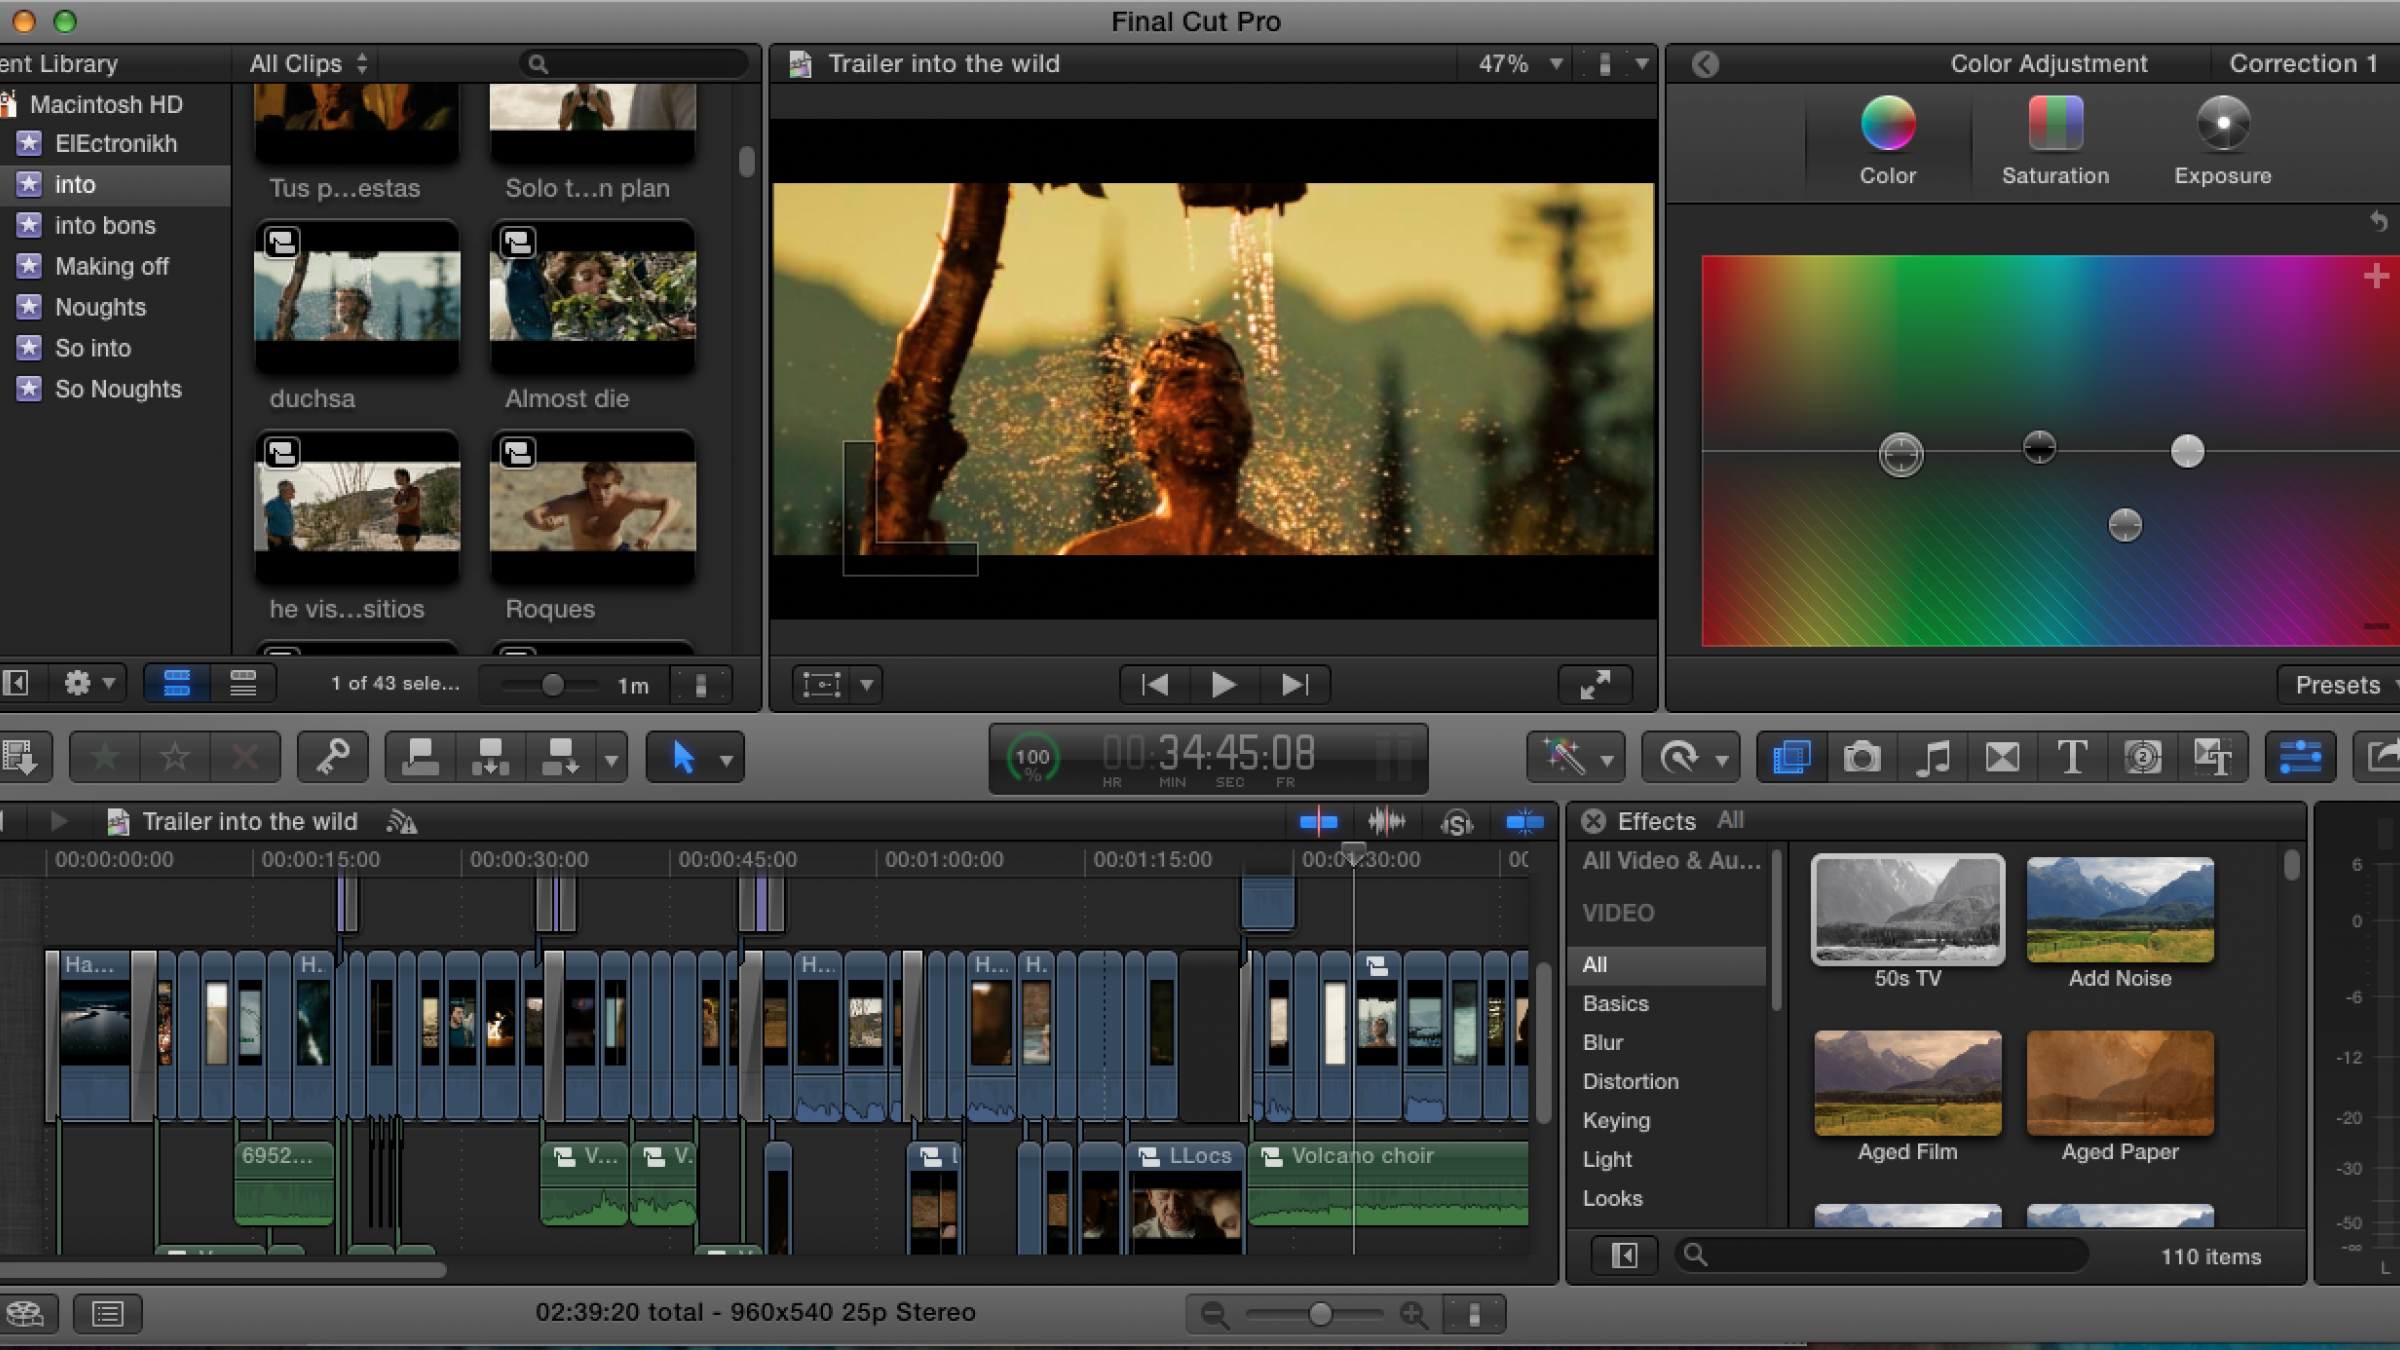 6 Effects Final Cut Pro X Users Can Use in Their Daily Workflow